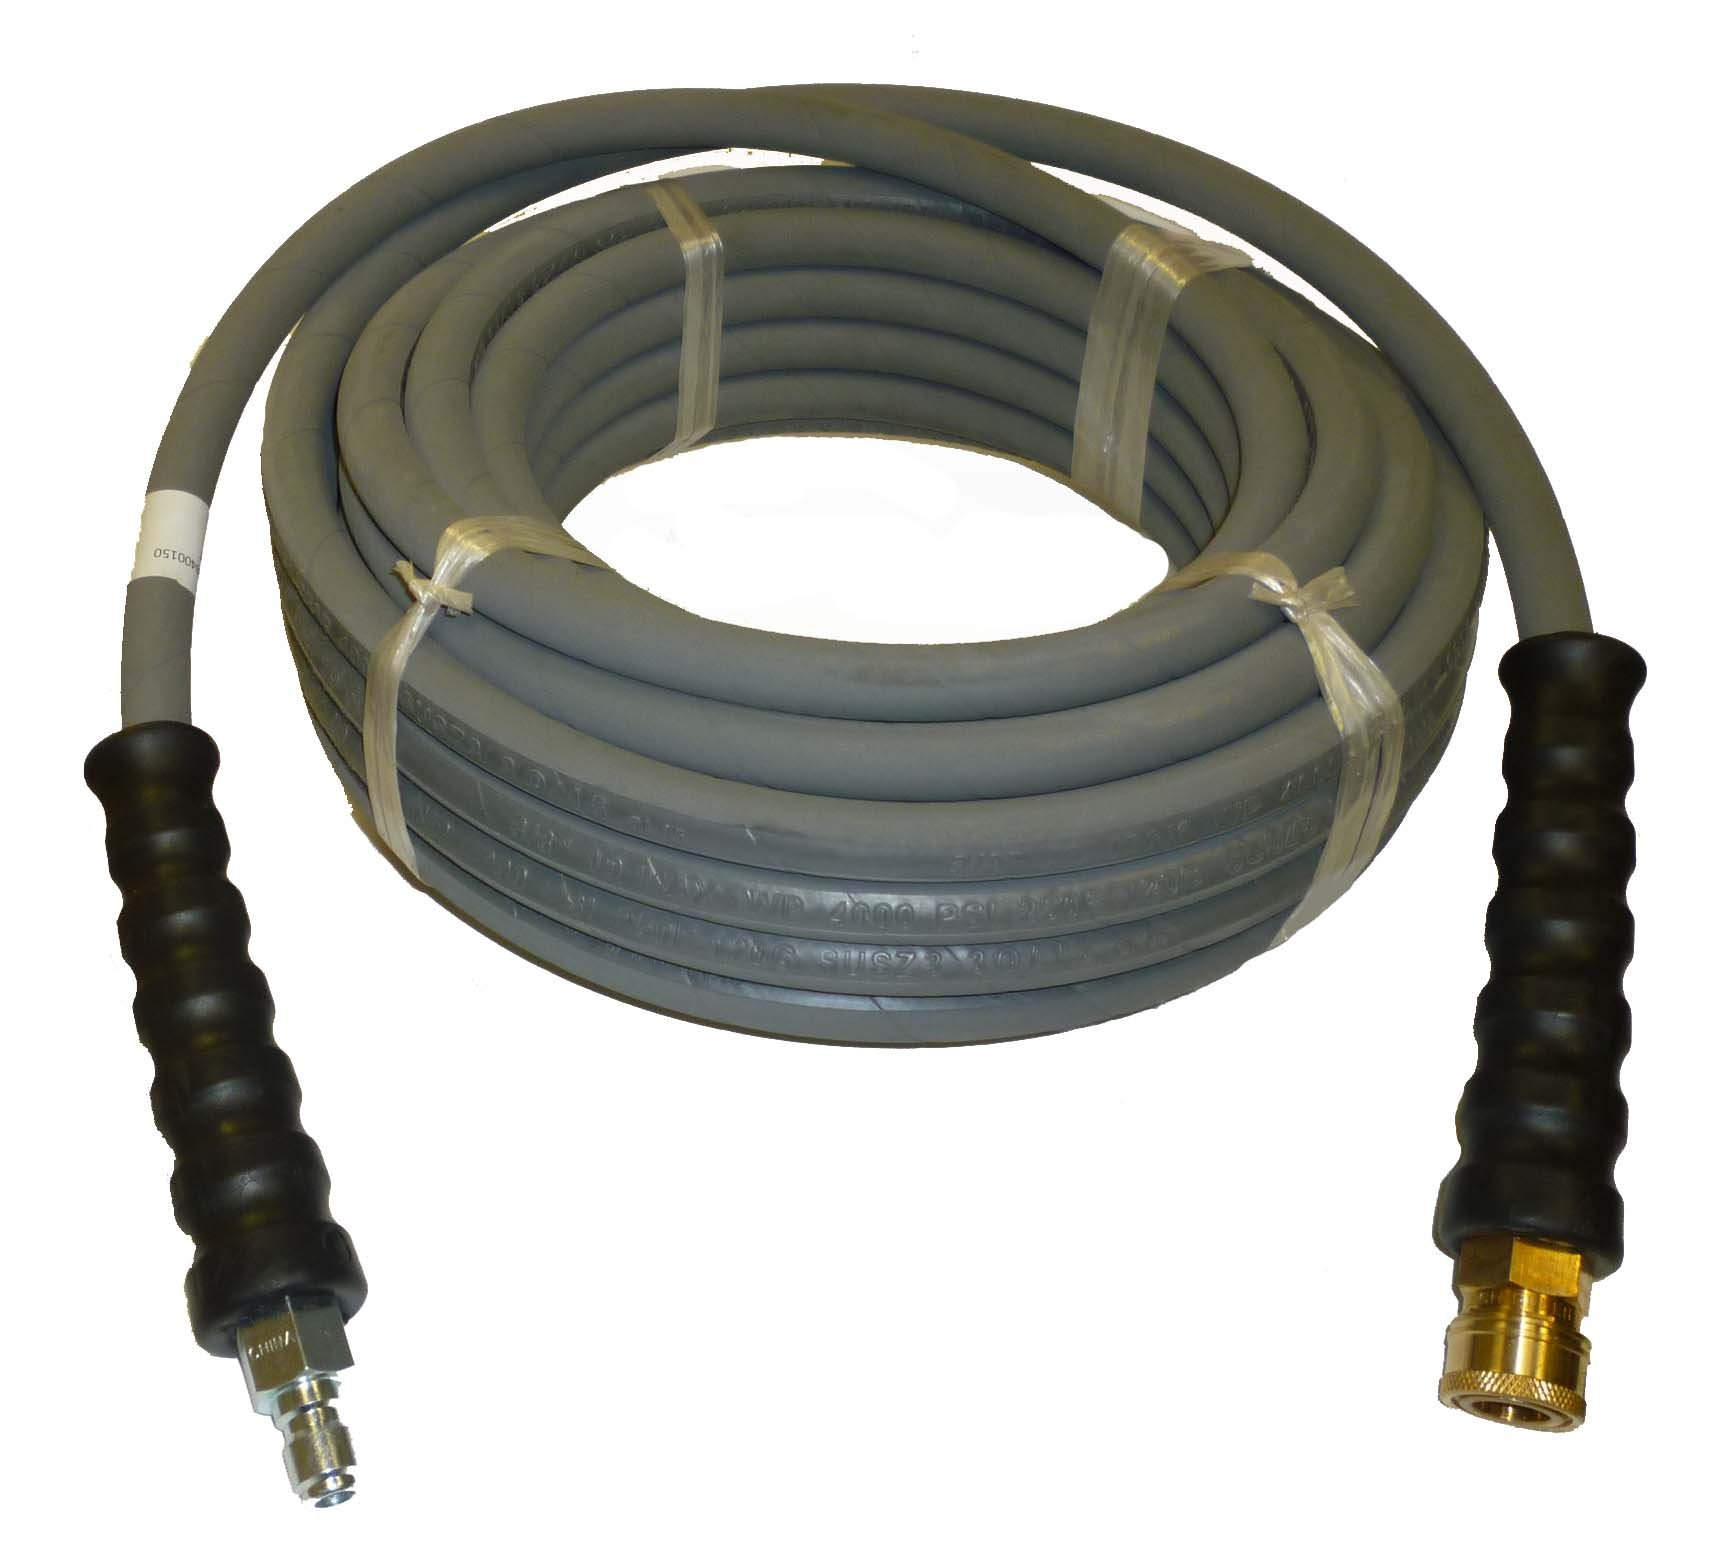 4000 PSI Grey 3/8'' x 50 FT 1 Layers of High Tensile Wire Braided Rubber Wrapped Pressure Washer Hose with Couplers by PROPULSE, A Schieffer Co.